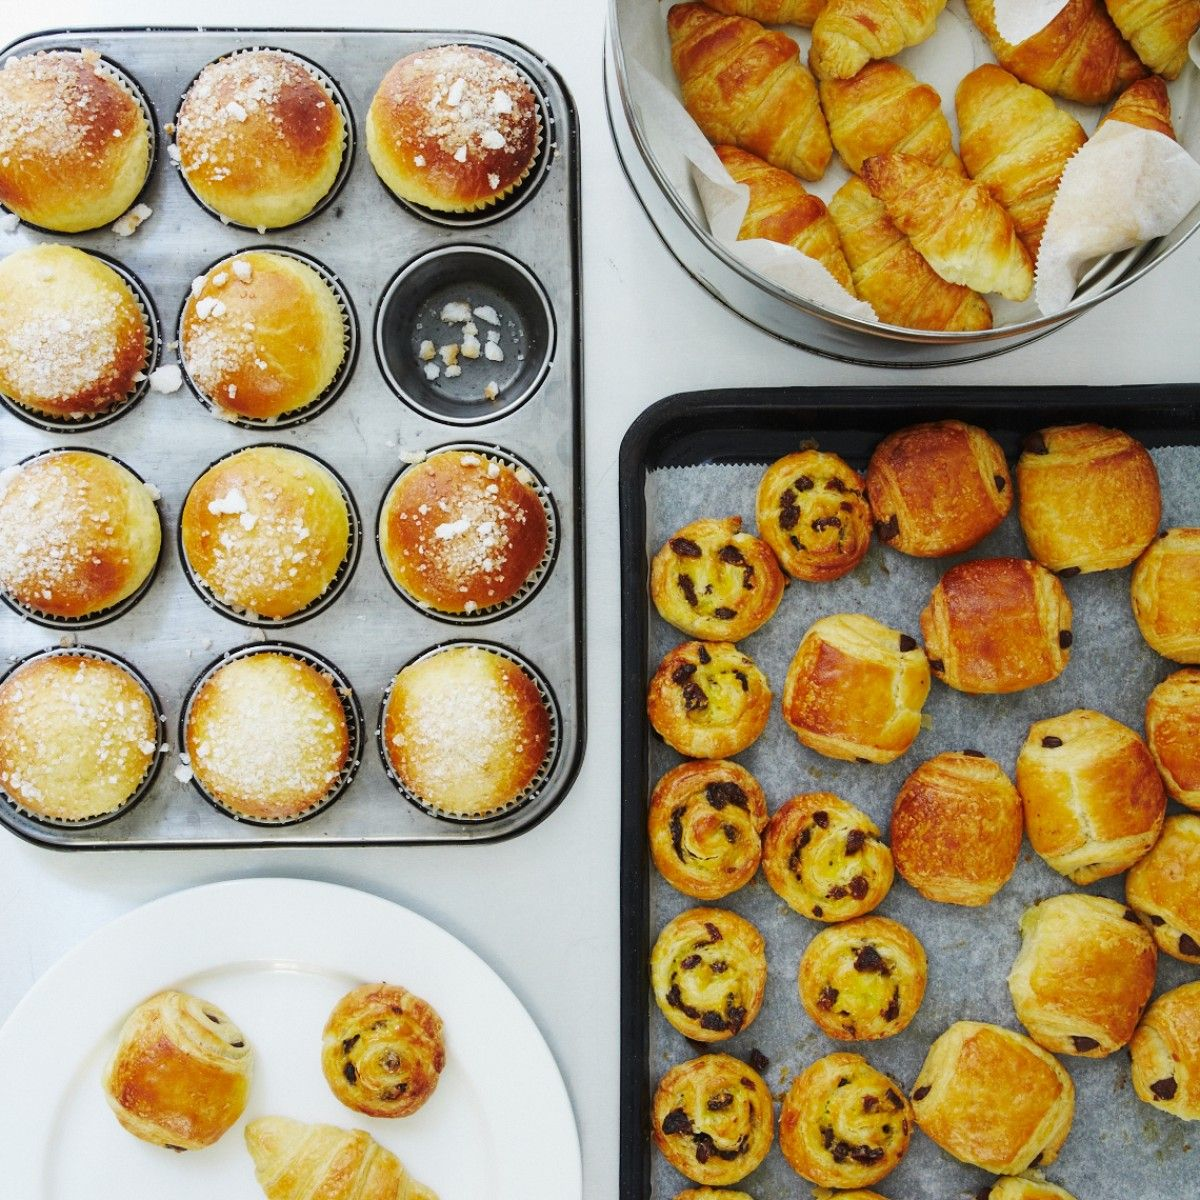 Learn to make croissants on our French Breakfast Pastries